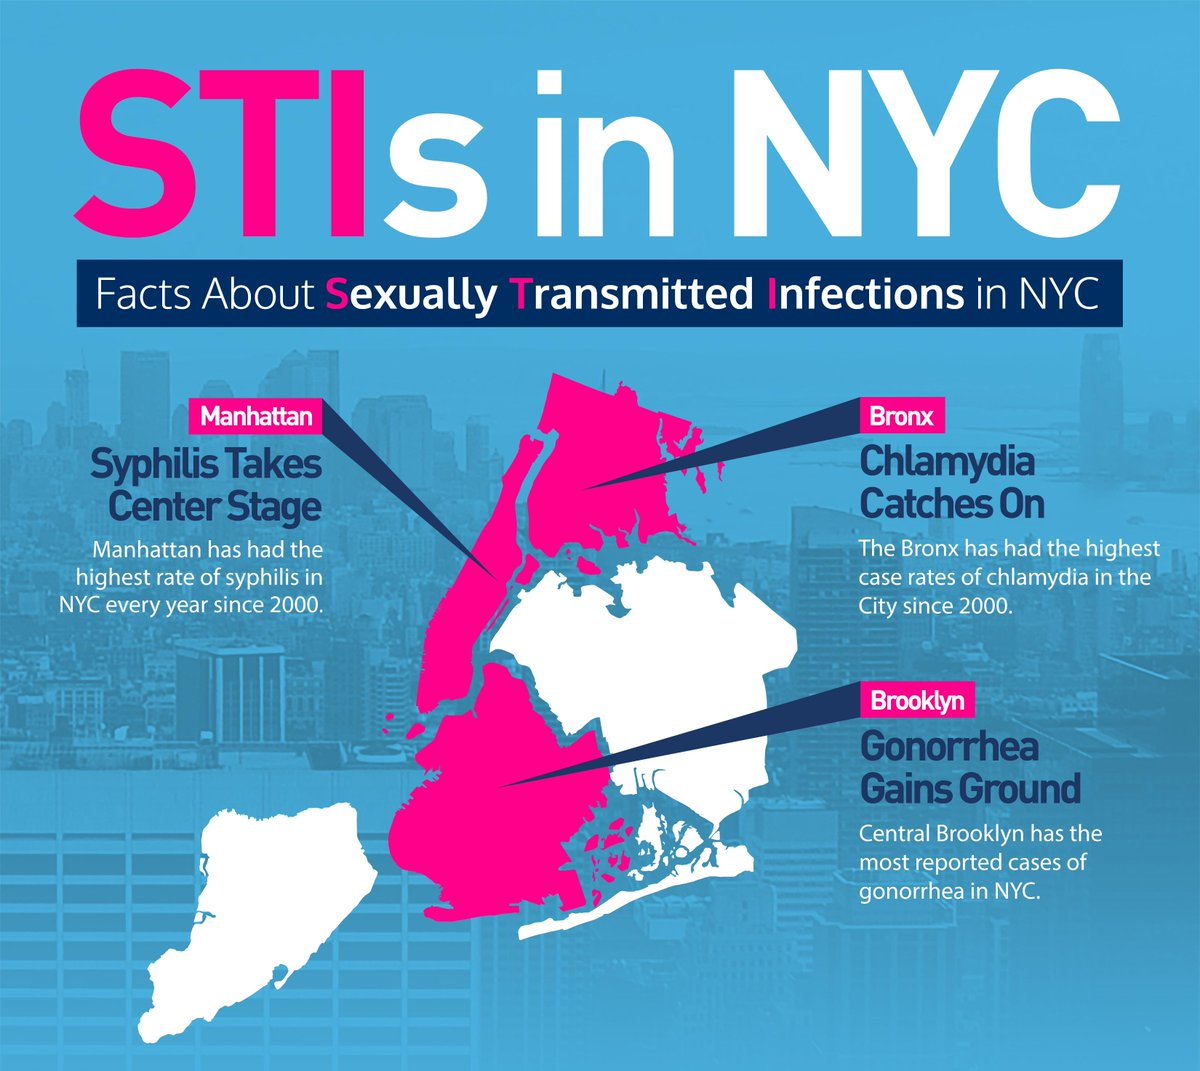 STD/STIs in NYC may be more common than you think. Our infographic has the facts: http://t.co/ZIH3D1ZPlT #STDMonth15 http://t.co/jW18Ox6zL0